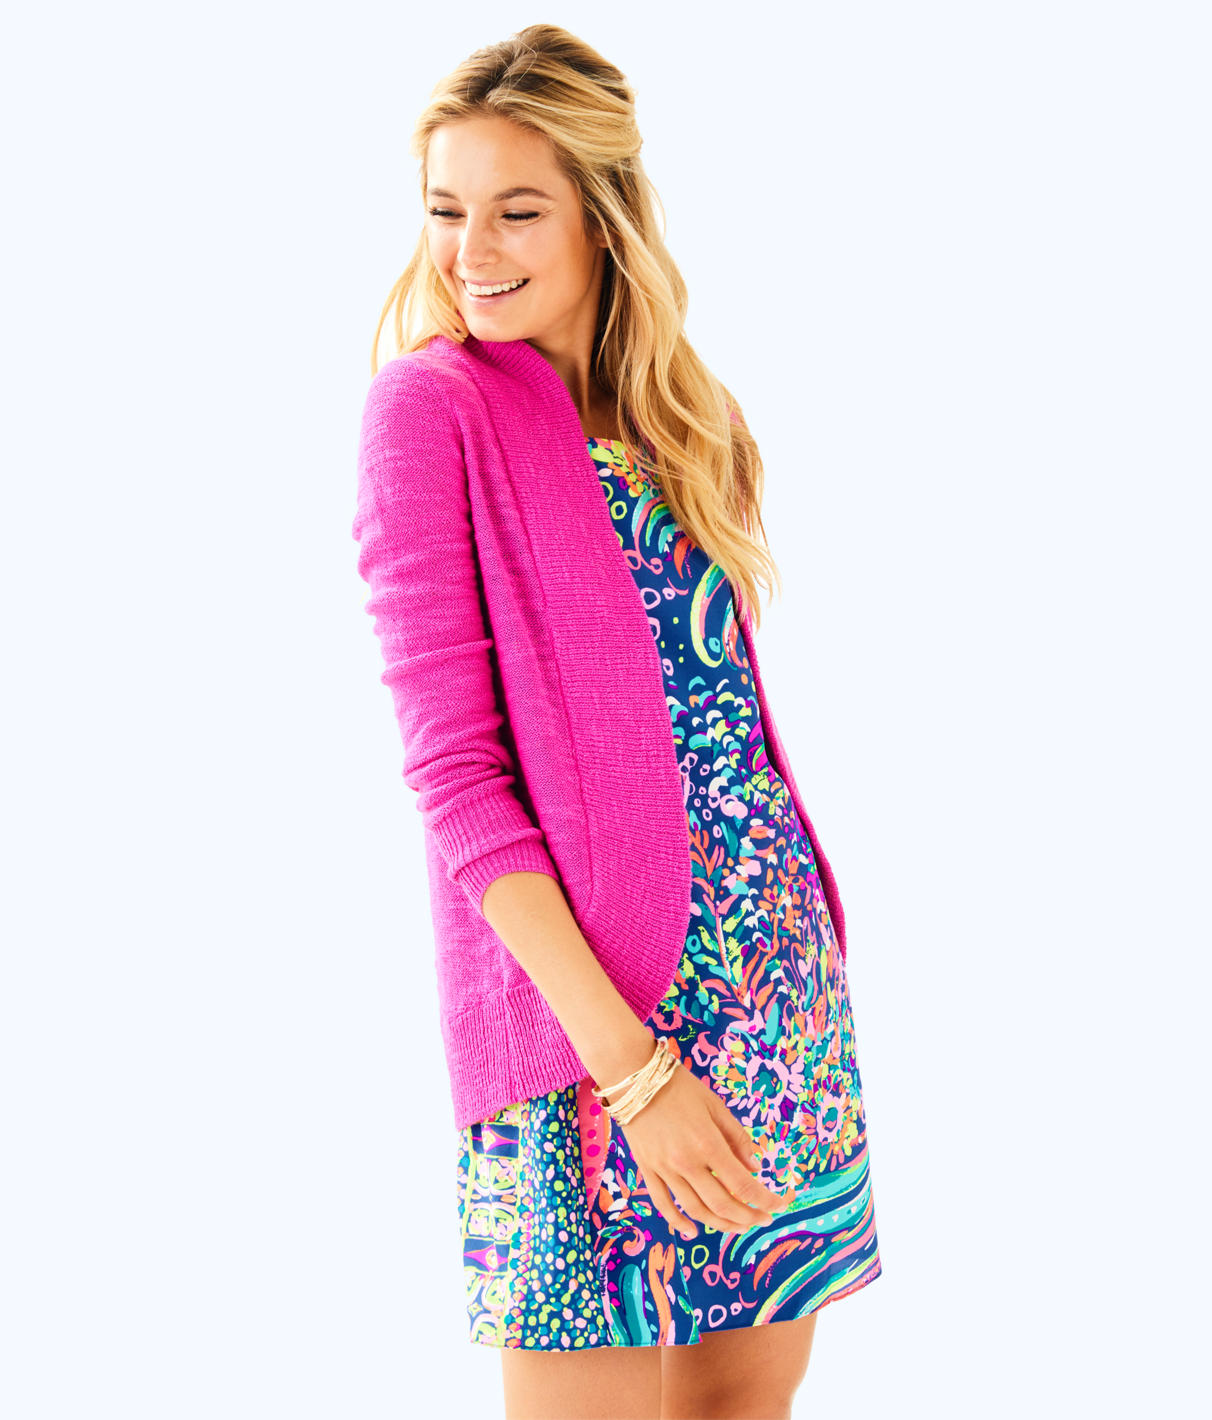 Lilly Pulitzer Lilly Pulitzer Womens Amalie Cardigan